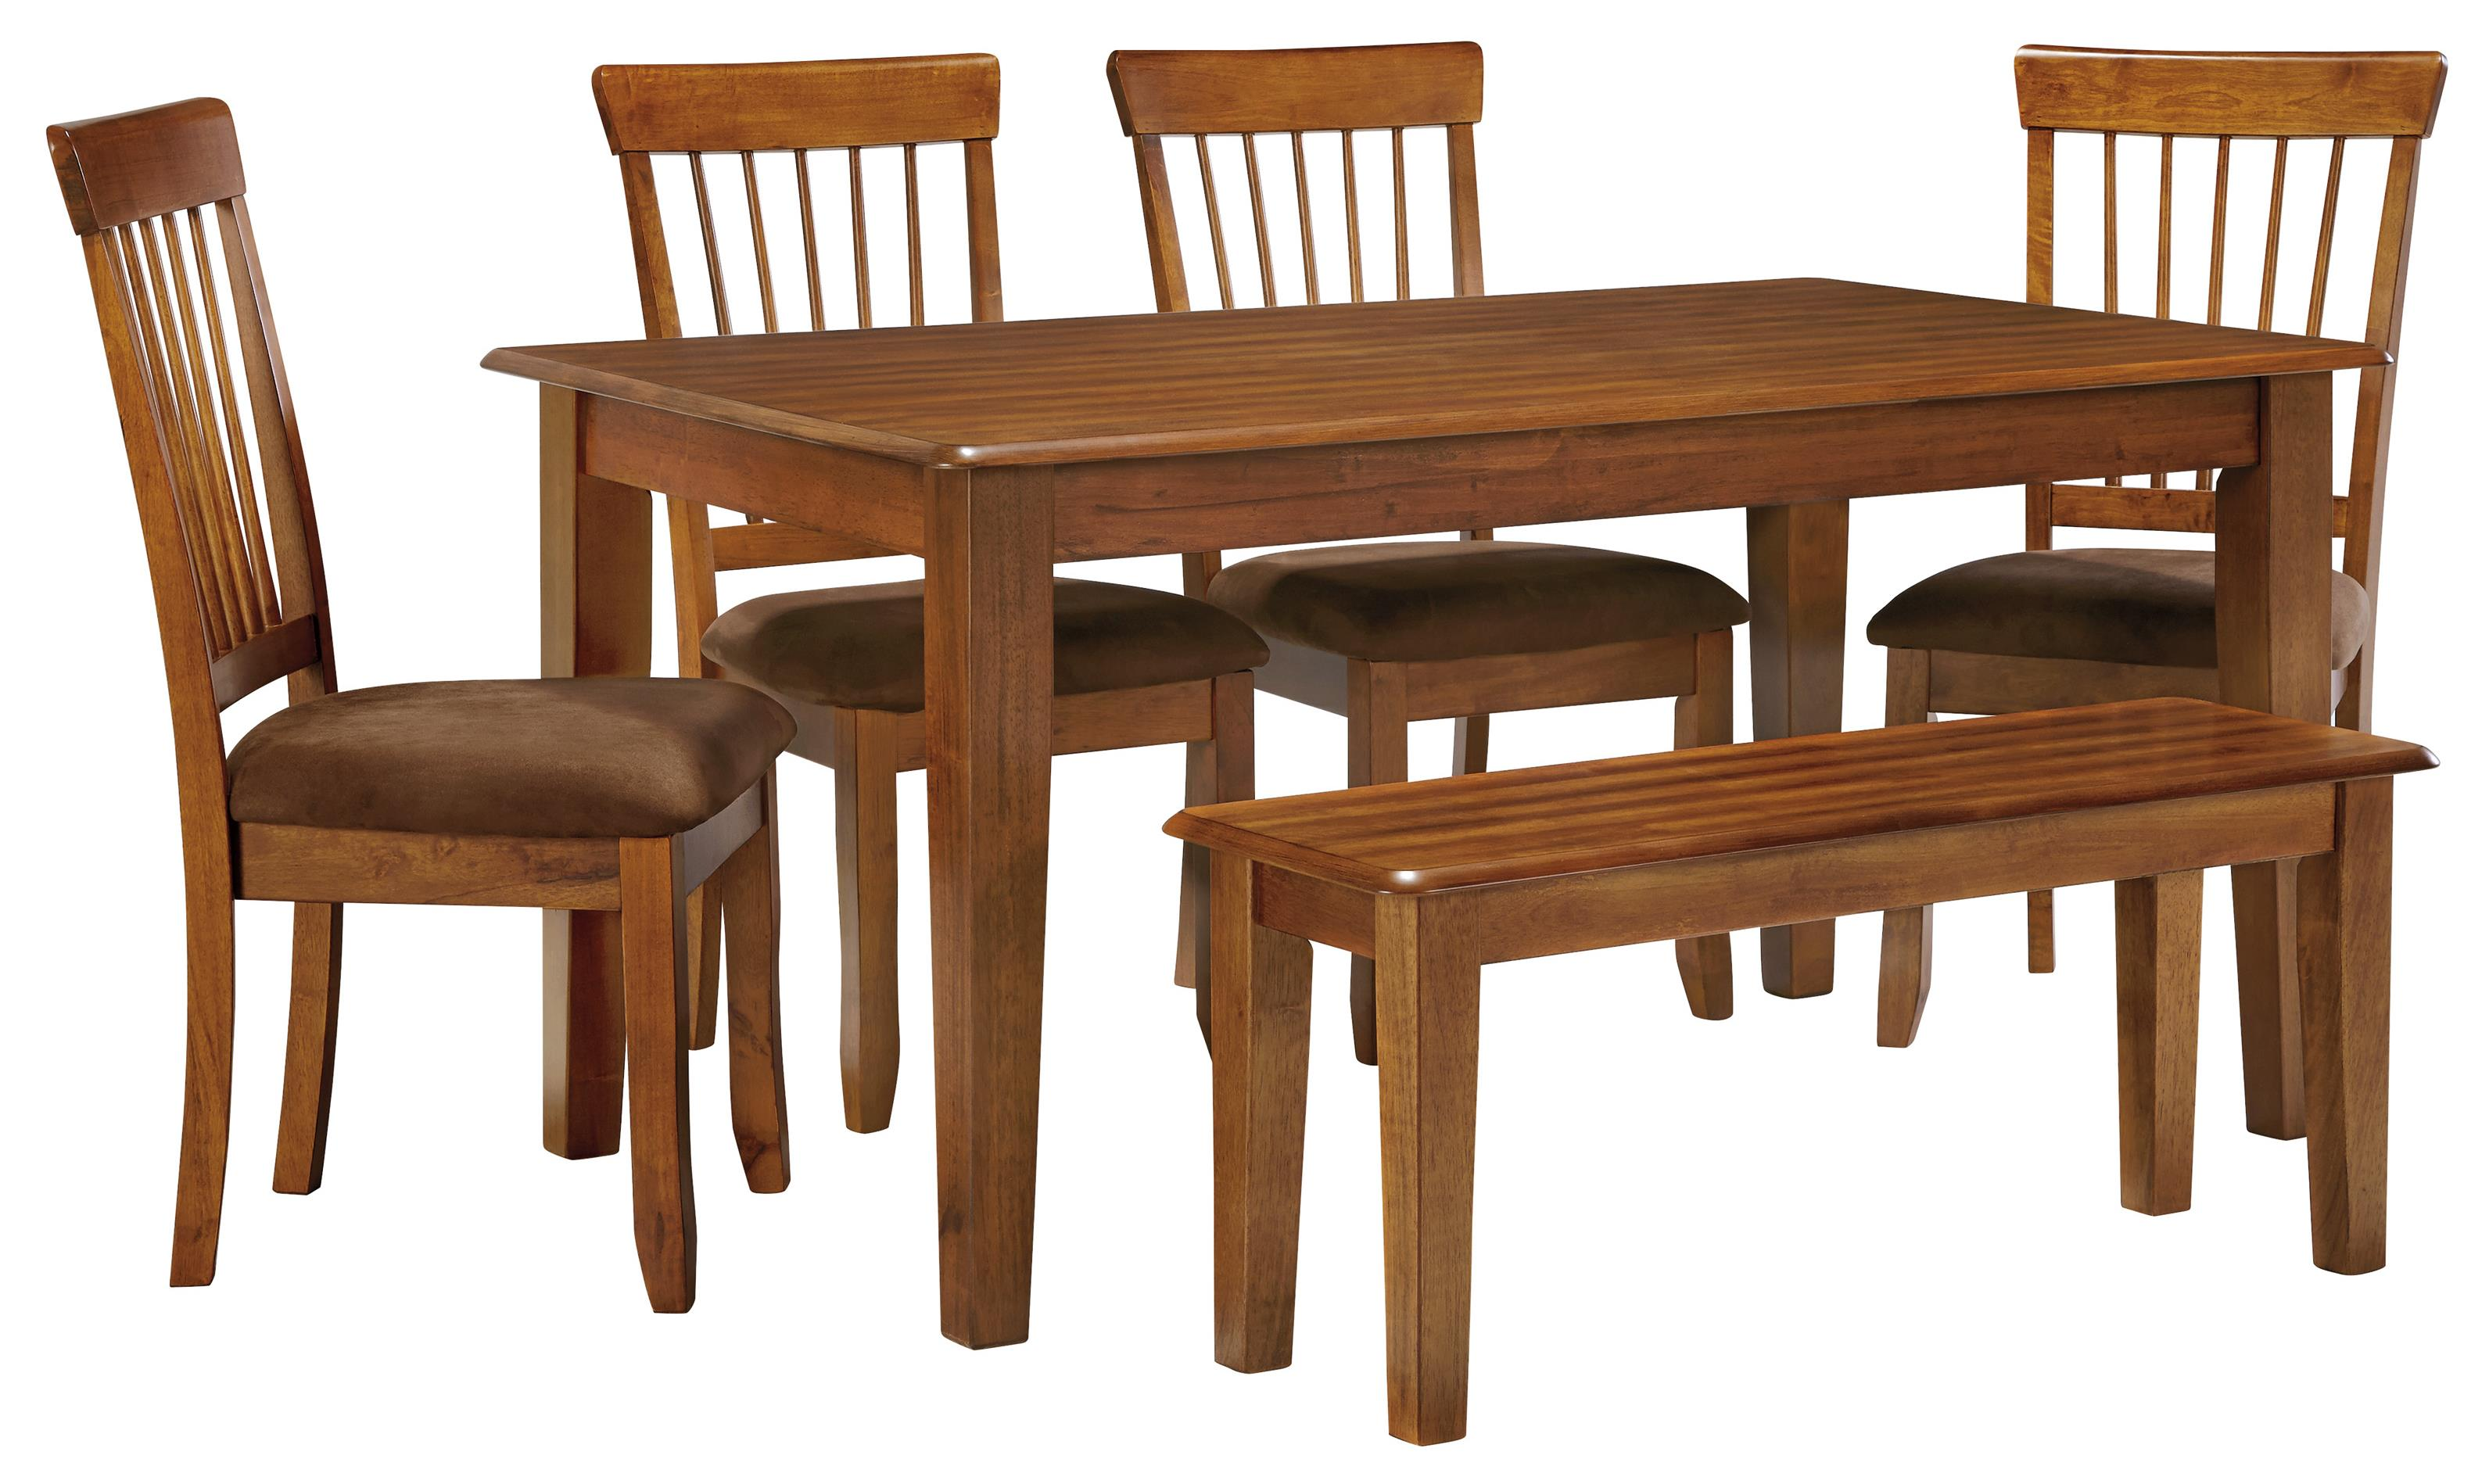 Ashley Furniture Barista 36 x 60 Table with 4 Chairs & Bench | John on 60's dining room sets, living room table sets, 60's bedroom sets, 60's furniture, 60's chairs,